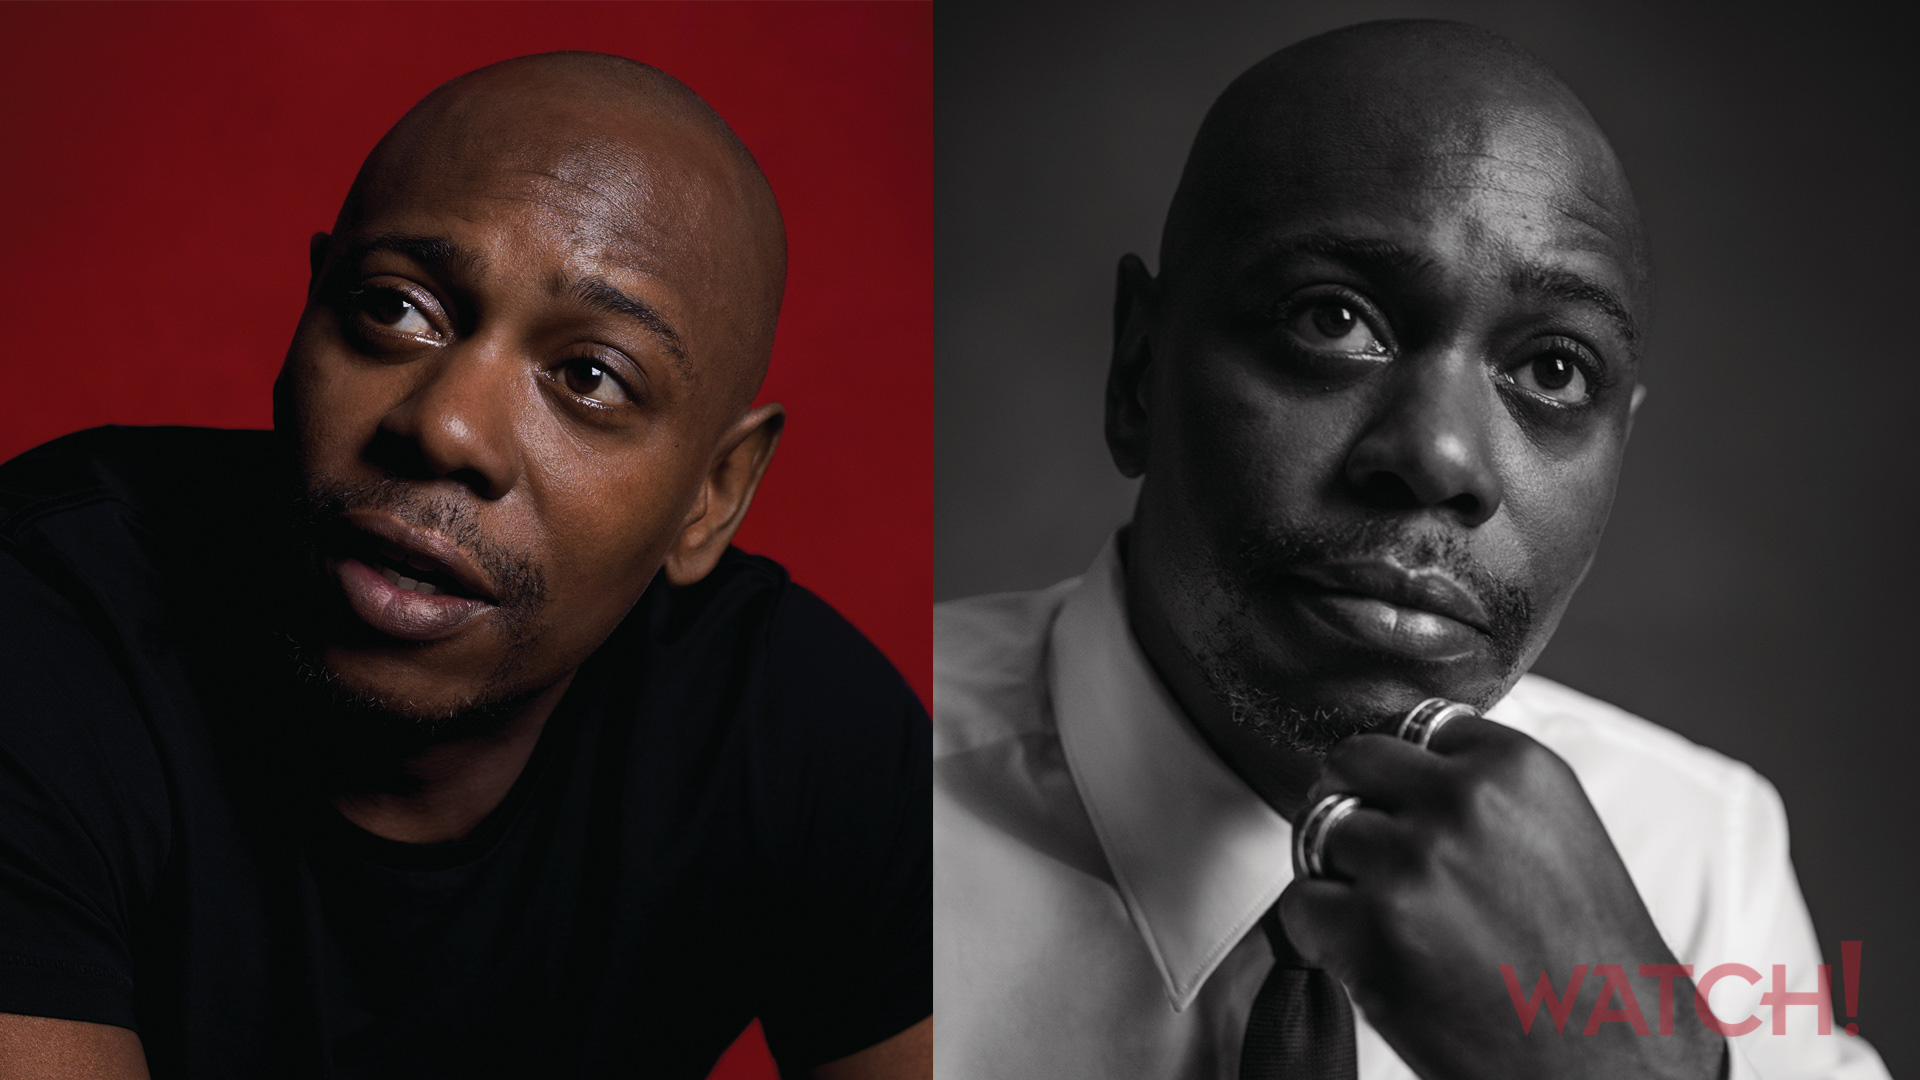 Dave Chappelle gets pensive